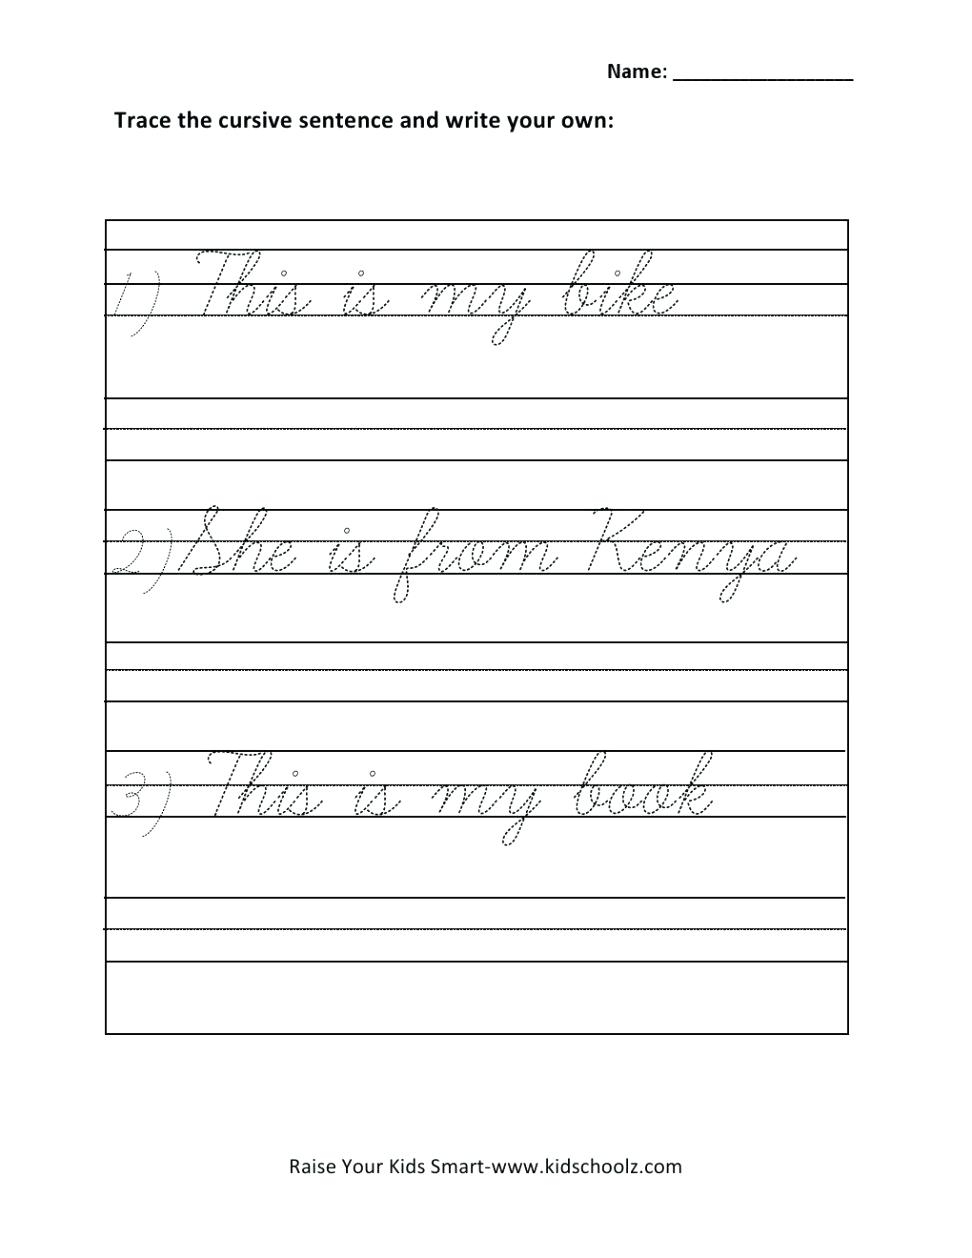 Cursive Paragraph Worksheets Cursive Writing Paragraph Worksheets - Free Printable Cursive Writing Paragraphs